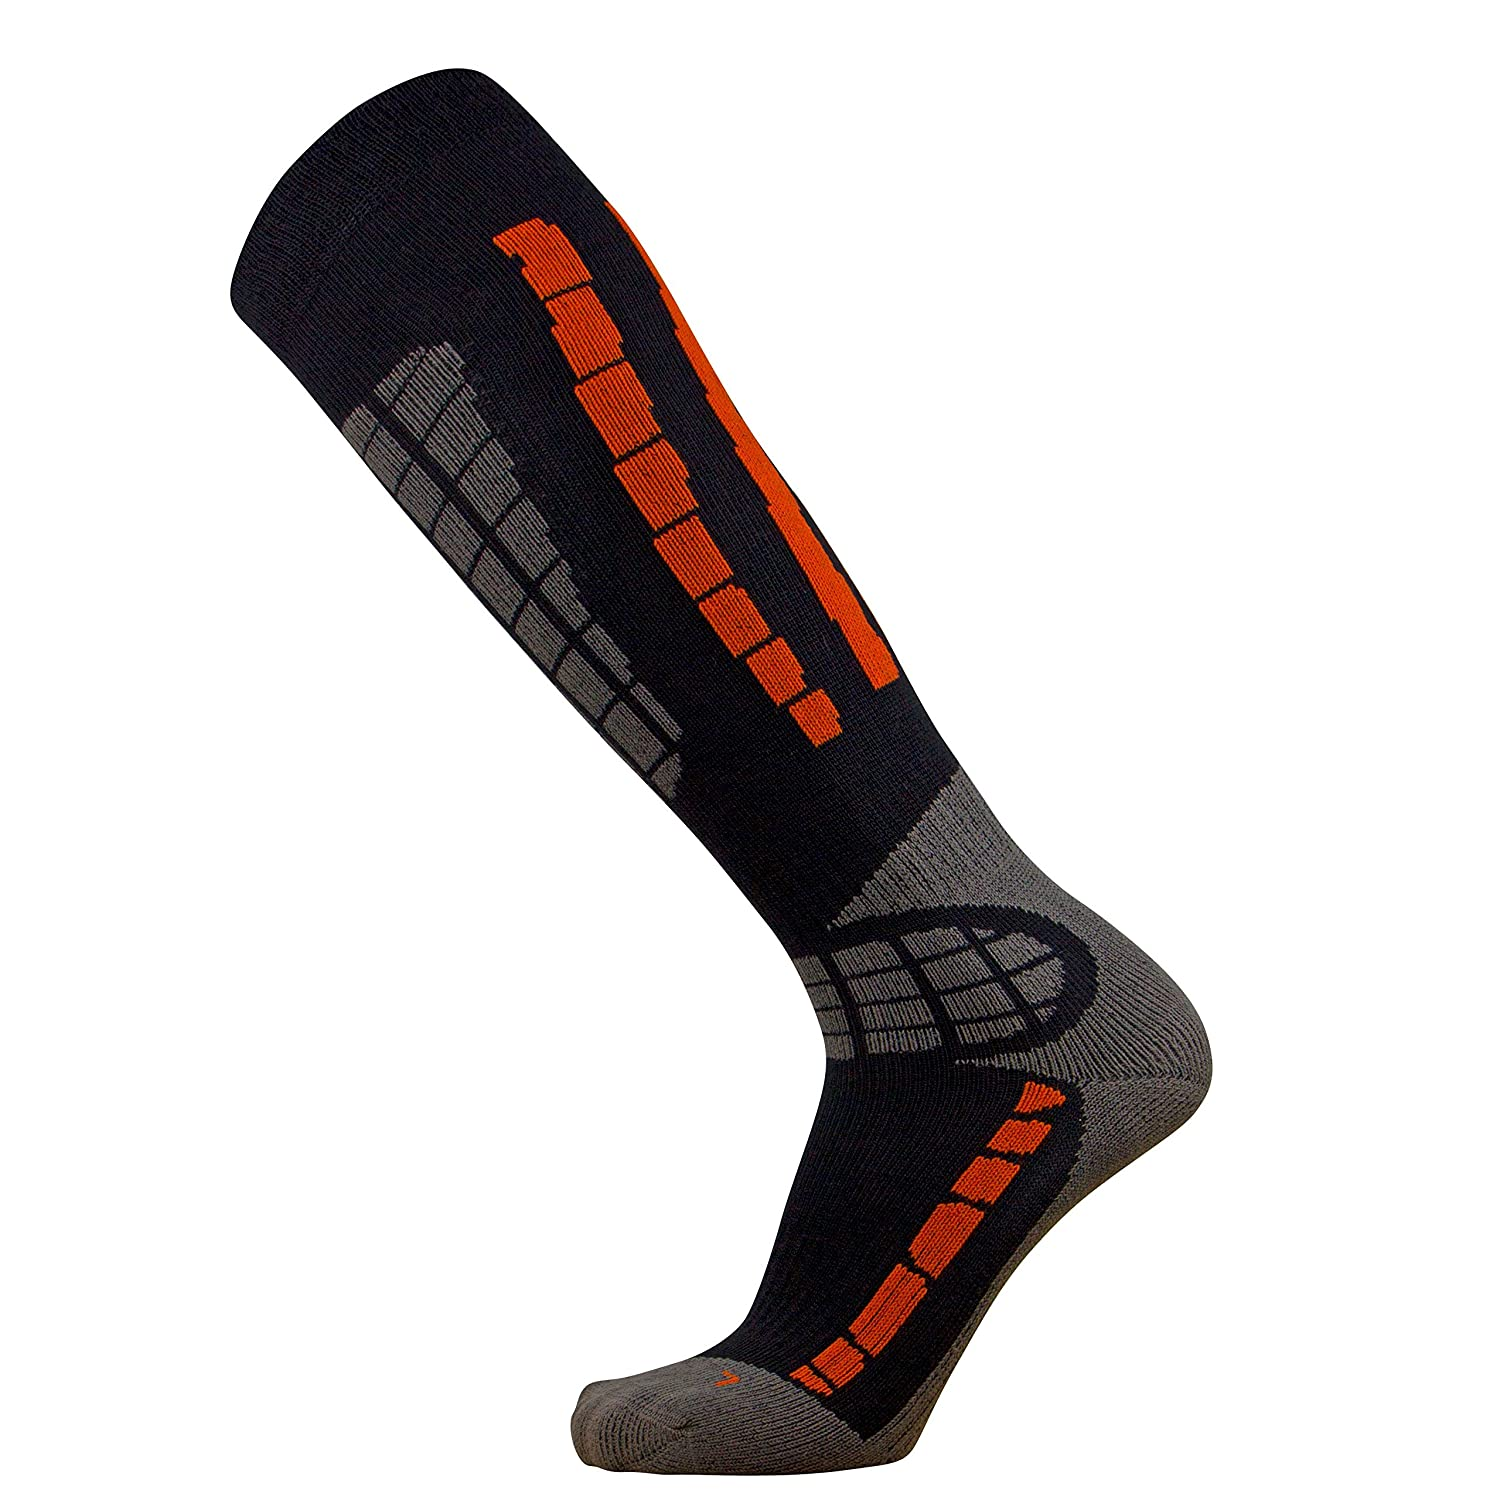 Ski Socks - Best Lightweight Warm Skiing Socks SharpeZone